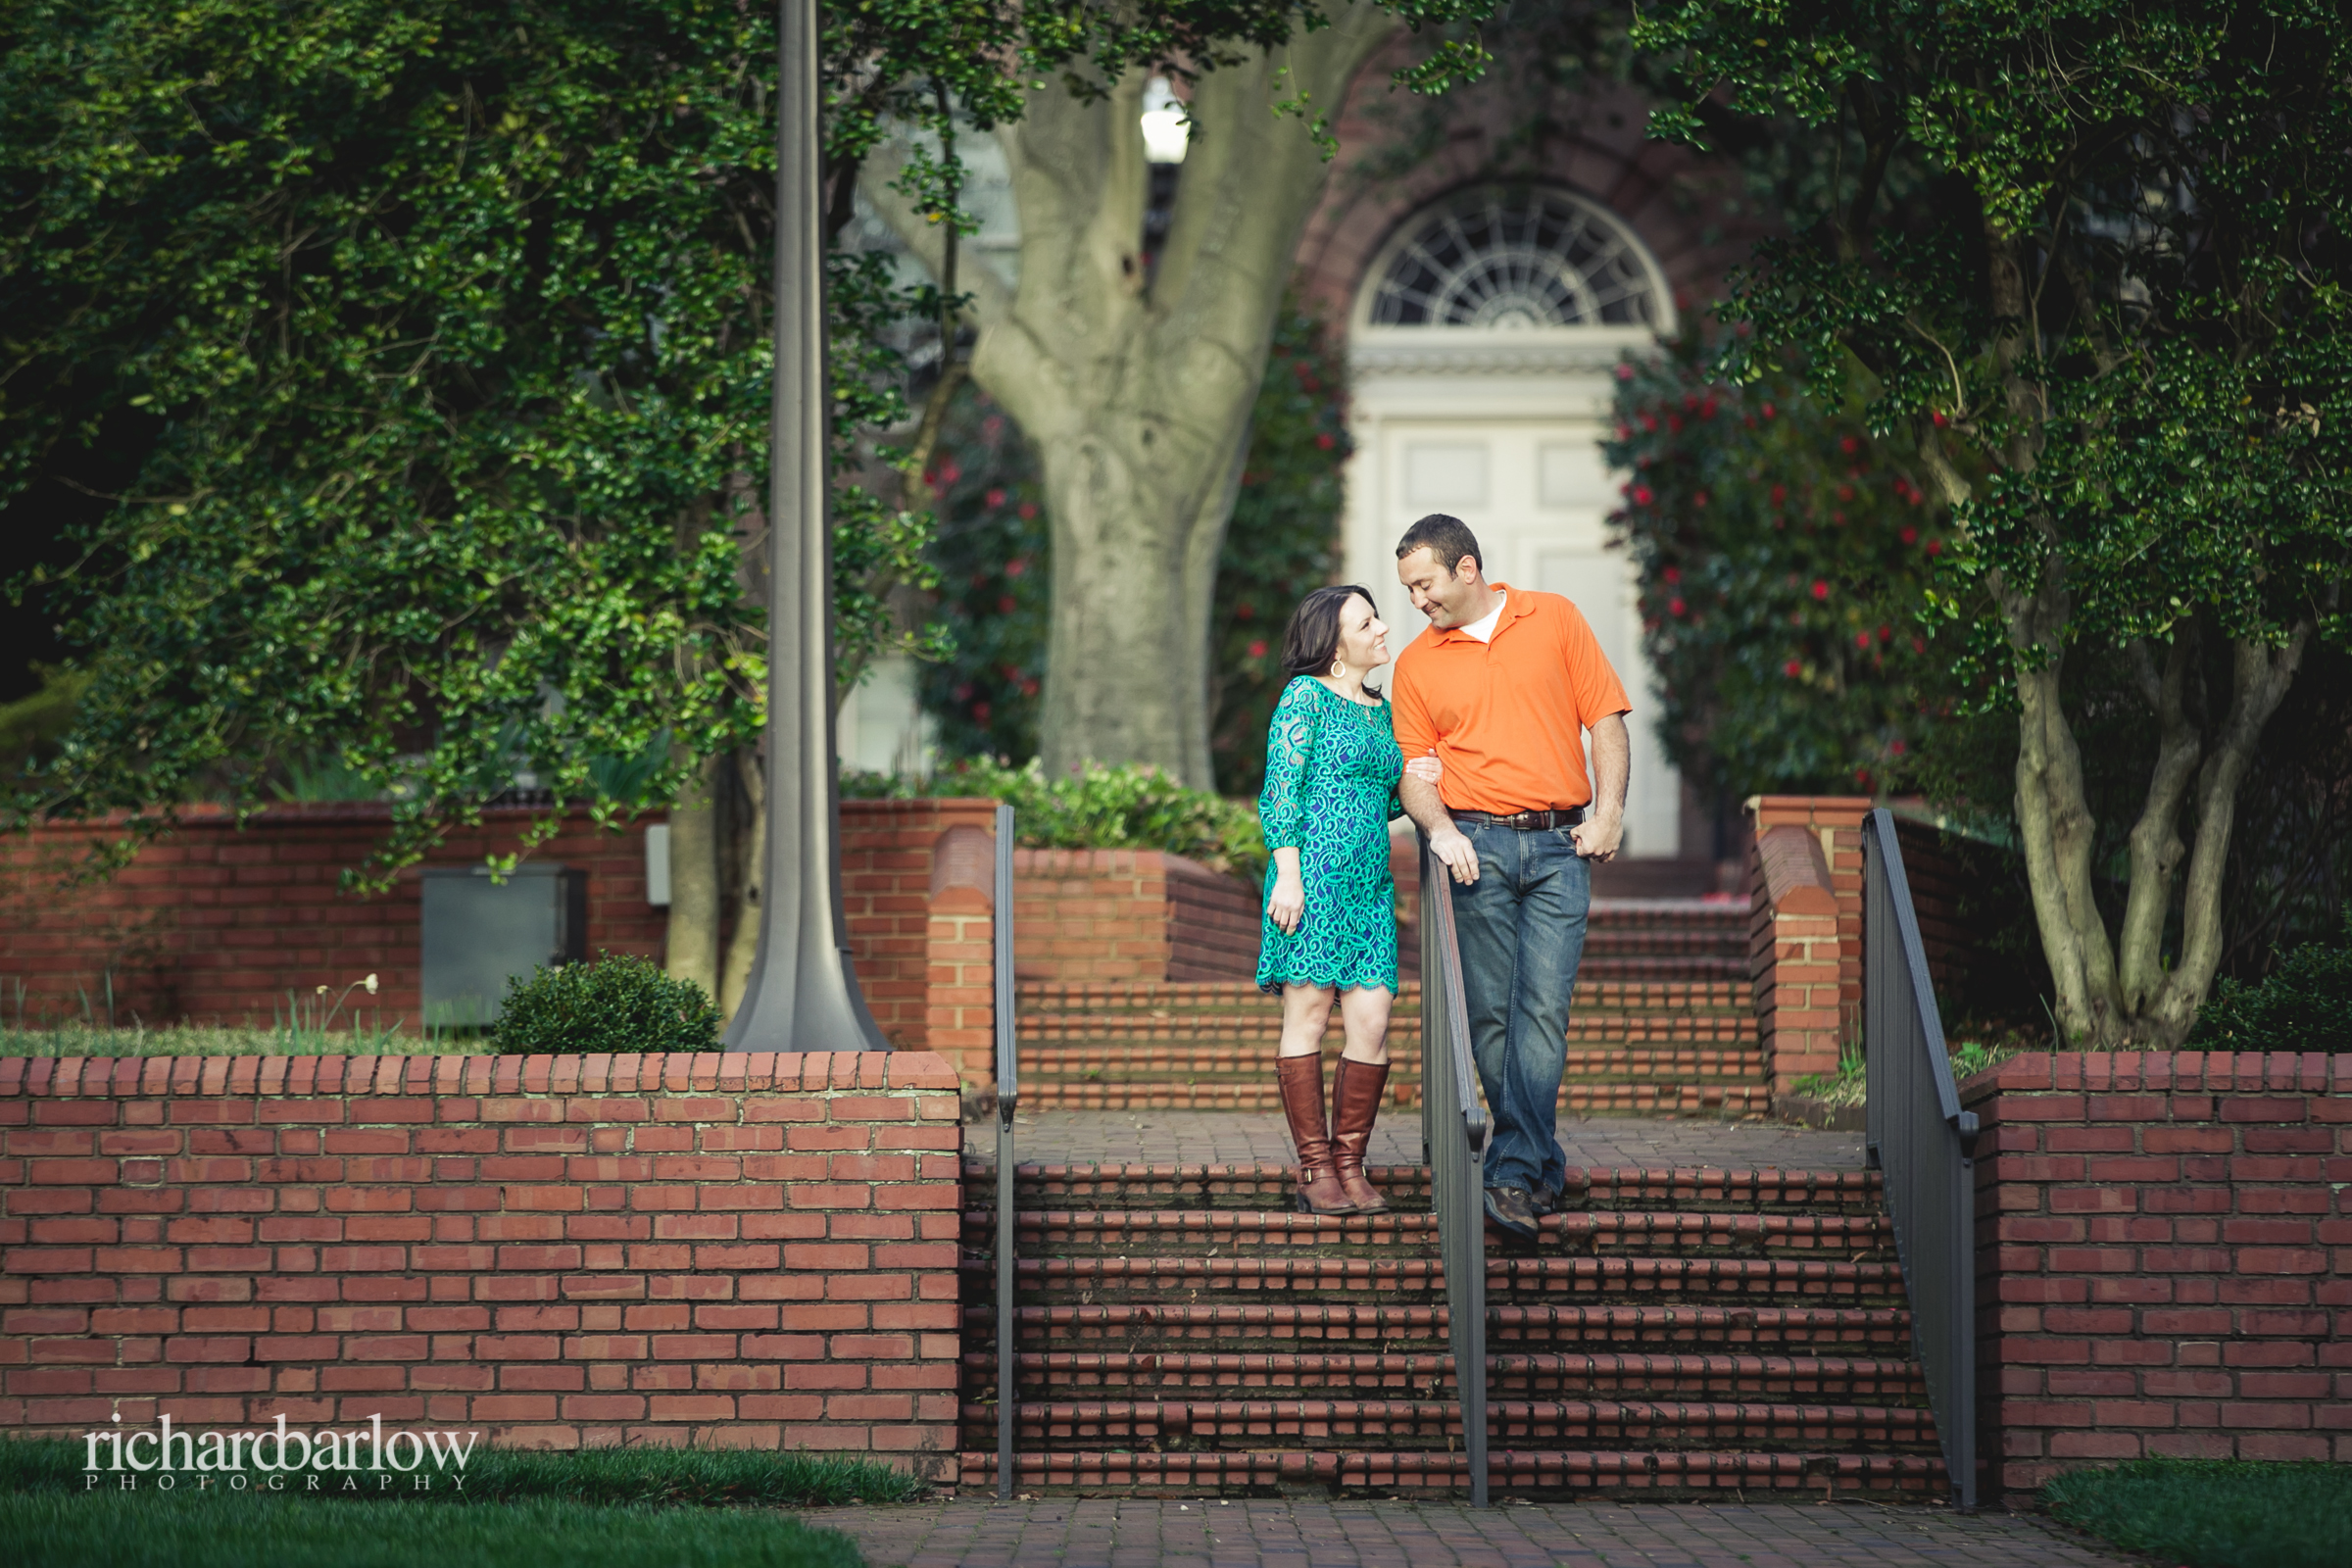 richard barlow photography - Jason and Karen Engagement Session NC State-25.jpg